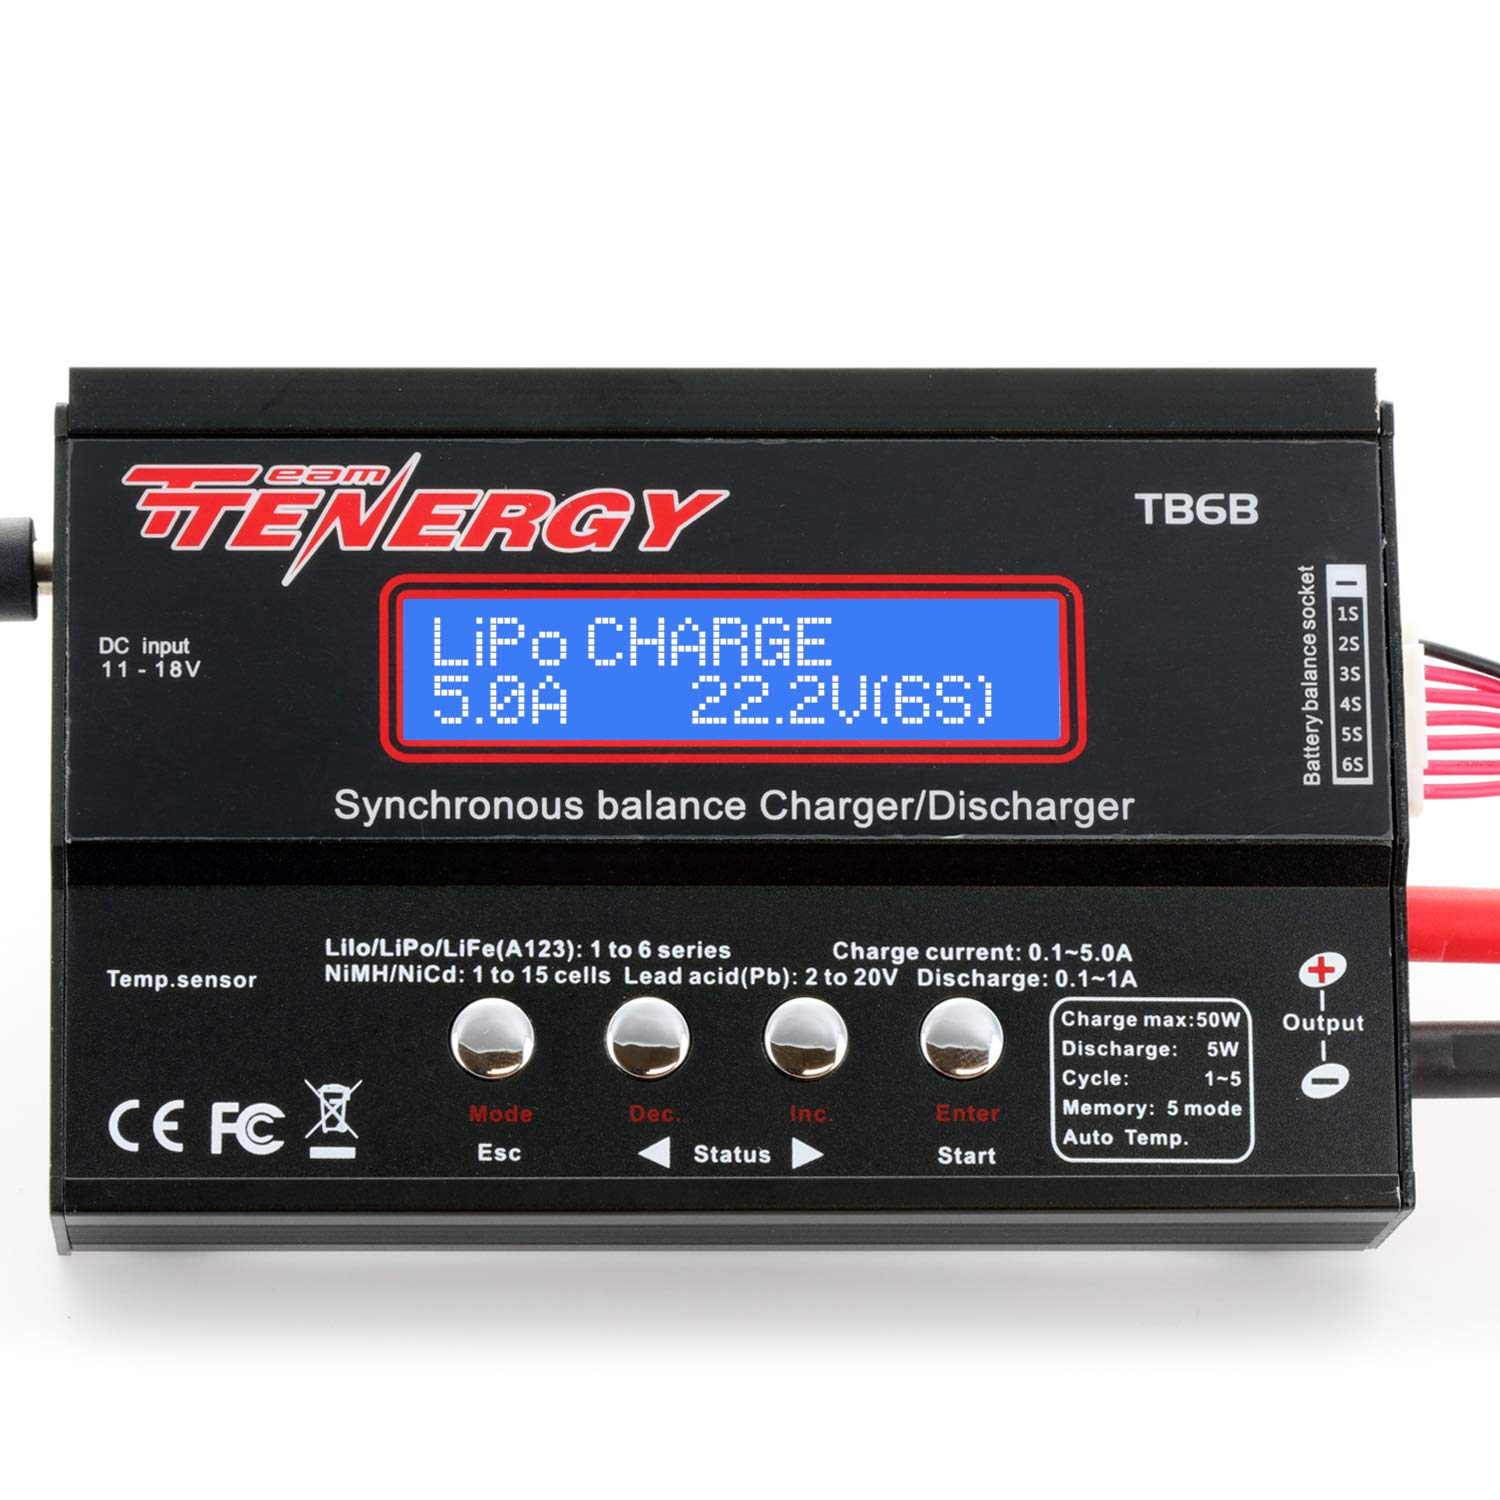 Tenergy TB6-B Balance Charger Discharger